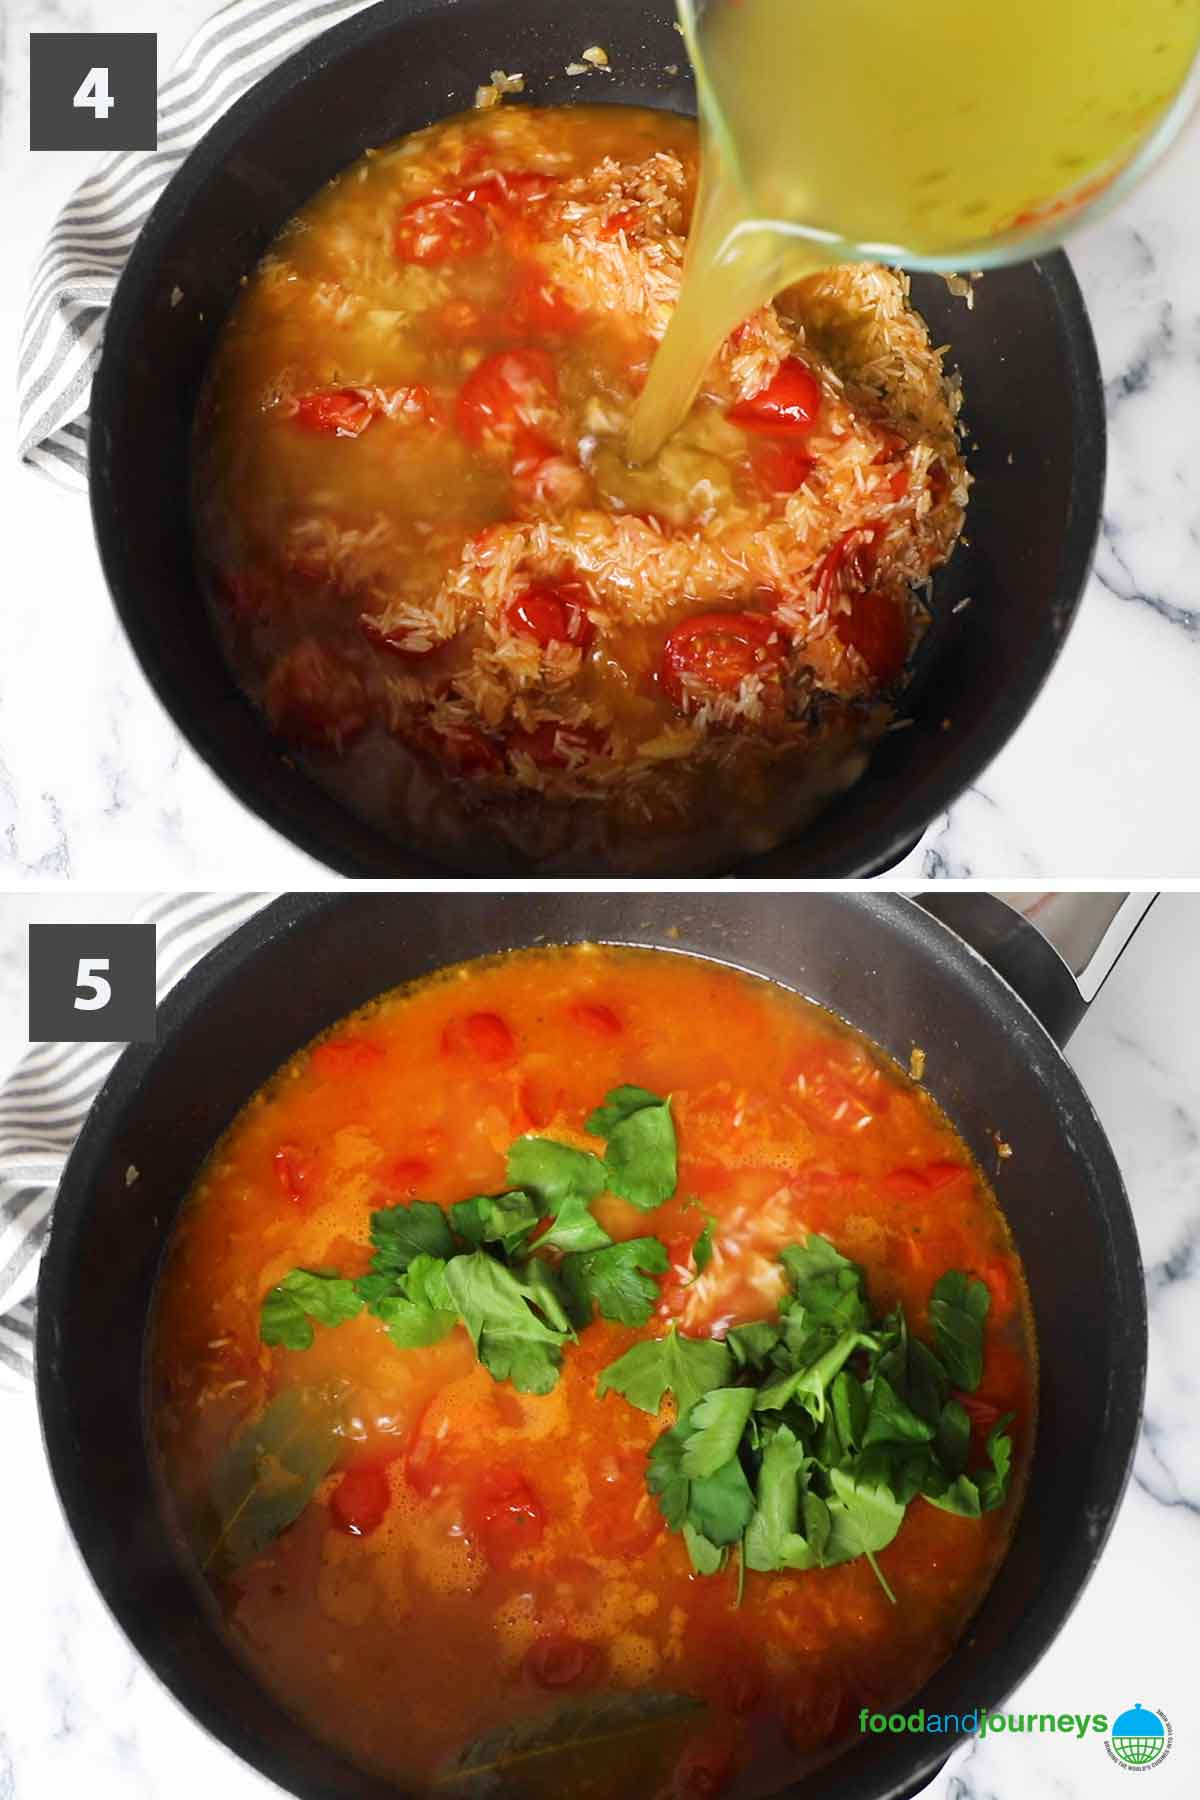 Jun2021, latest second part of a collage of images showing the step by step process on how to make tomato rice.